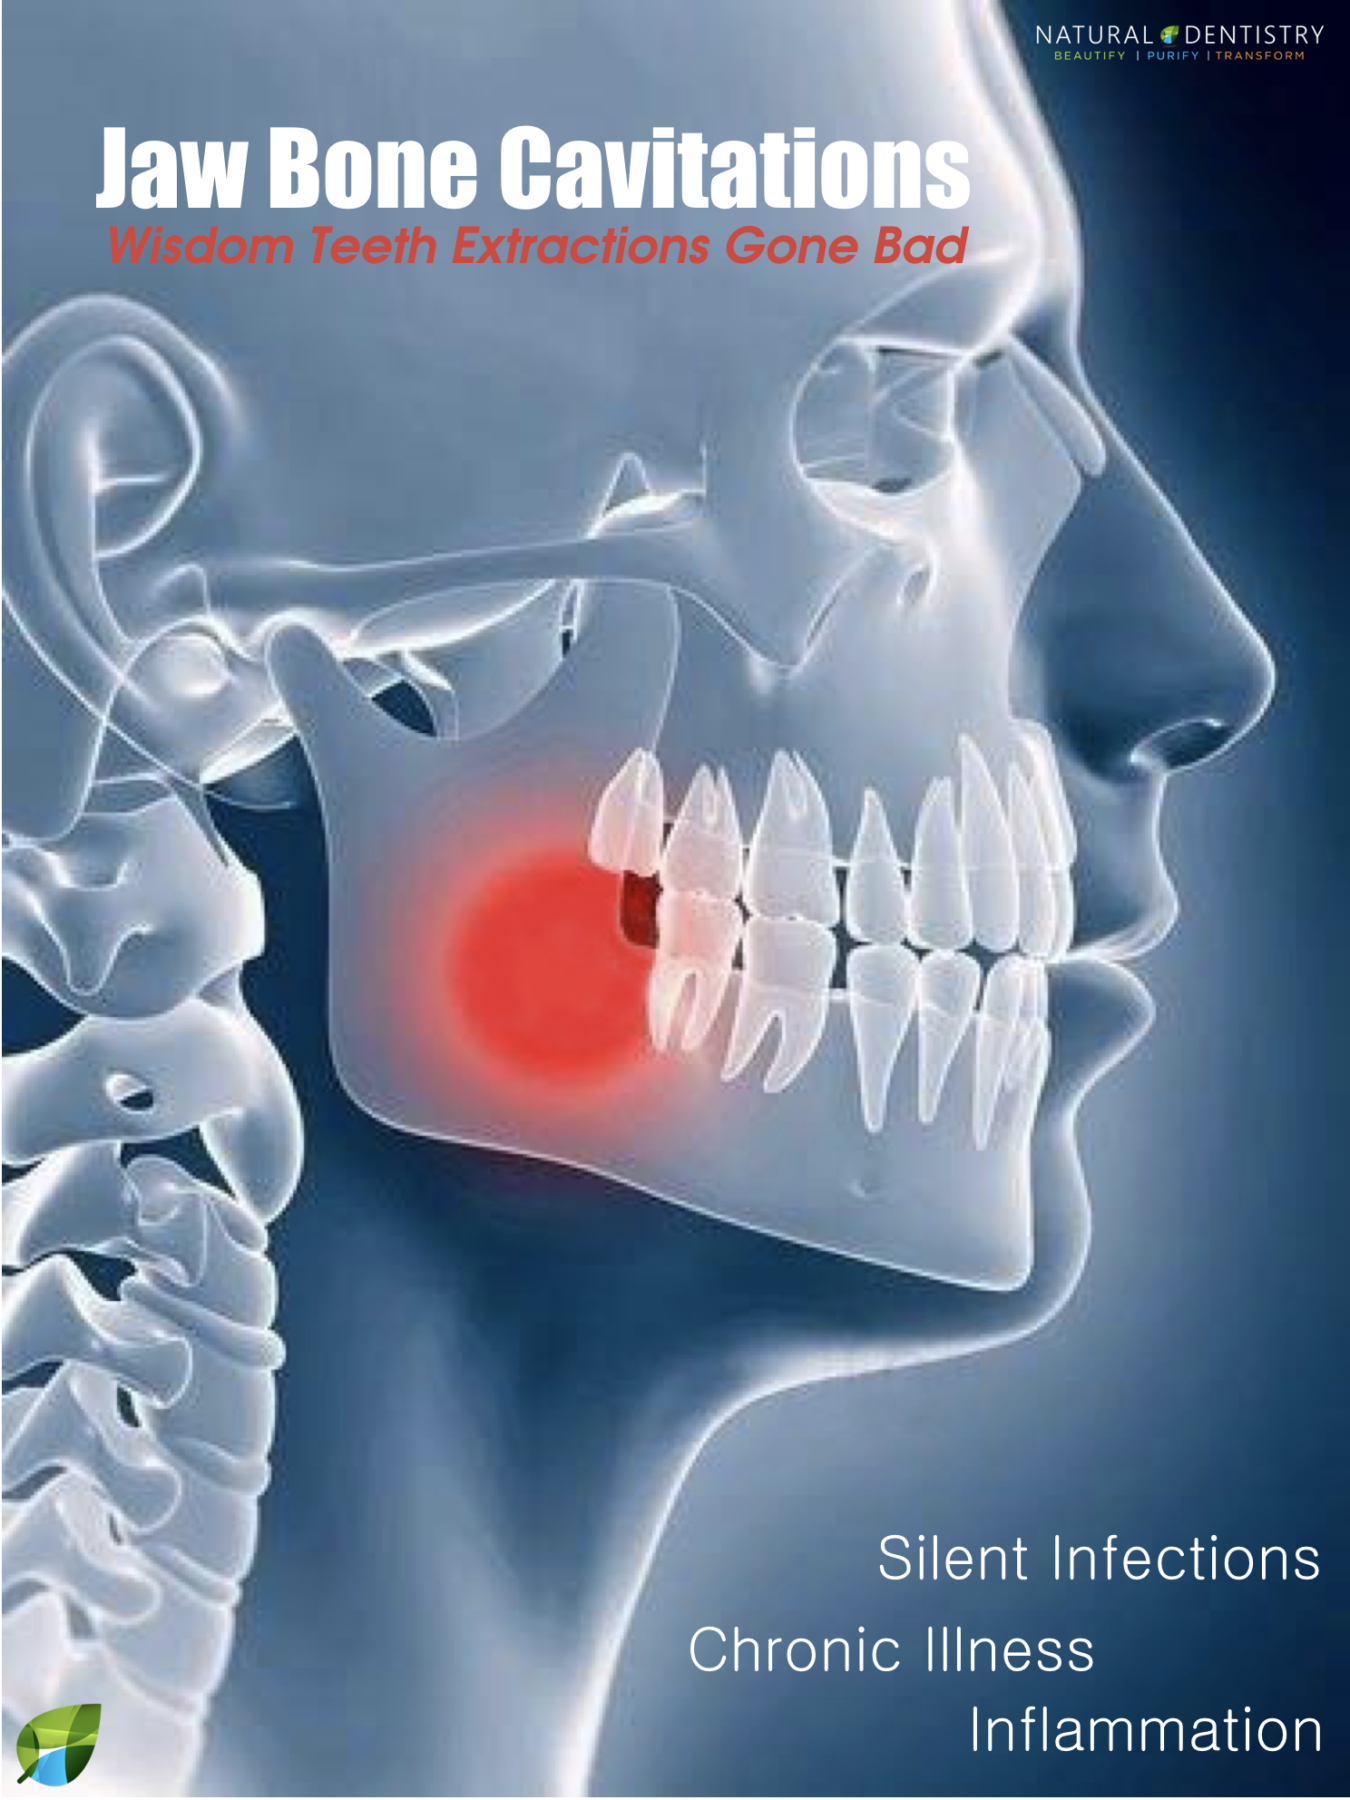 Dental Cavitations | Jaw Bone Infections